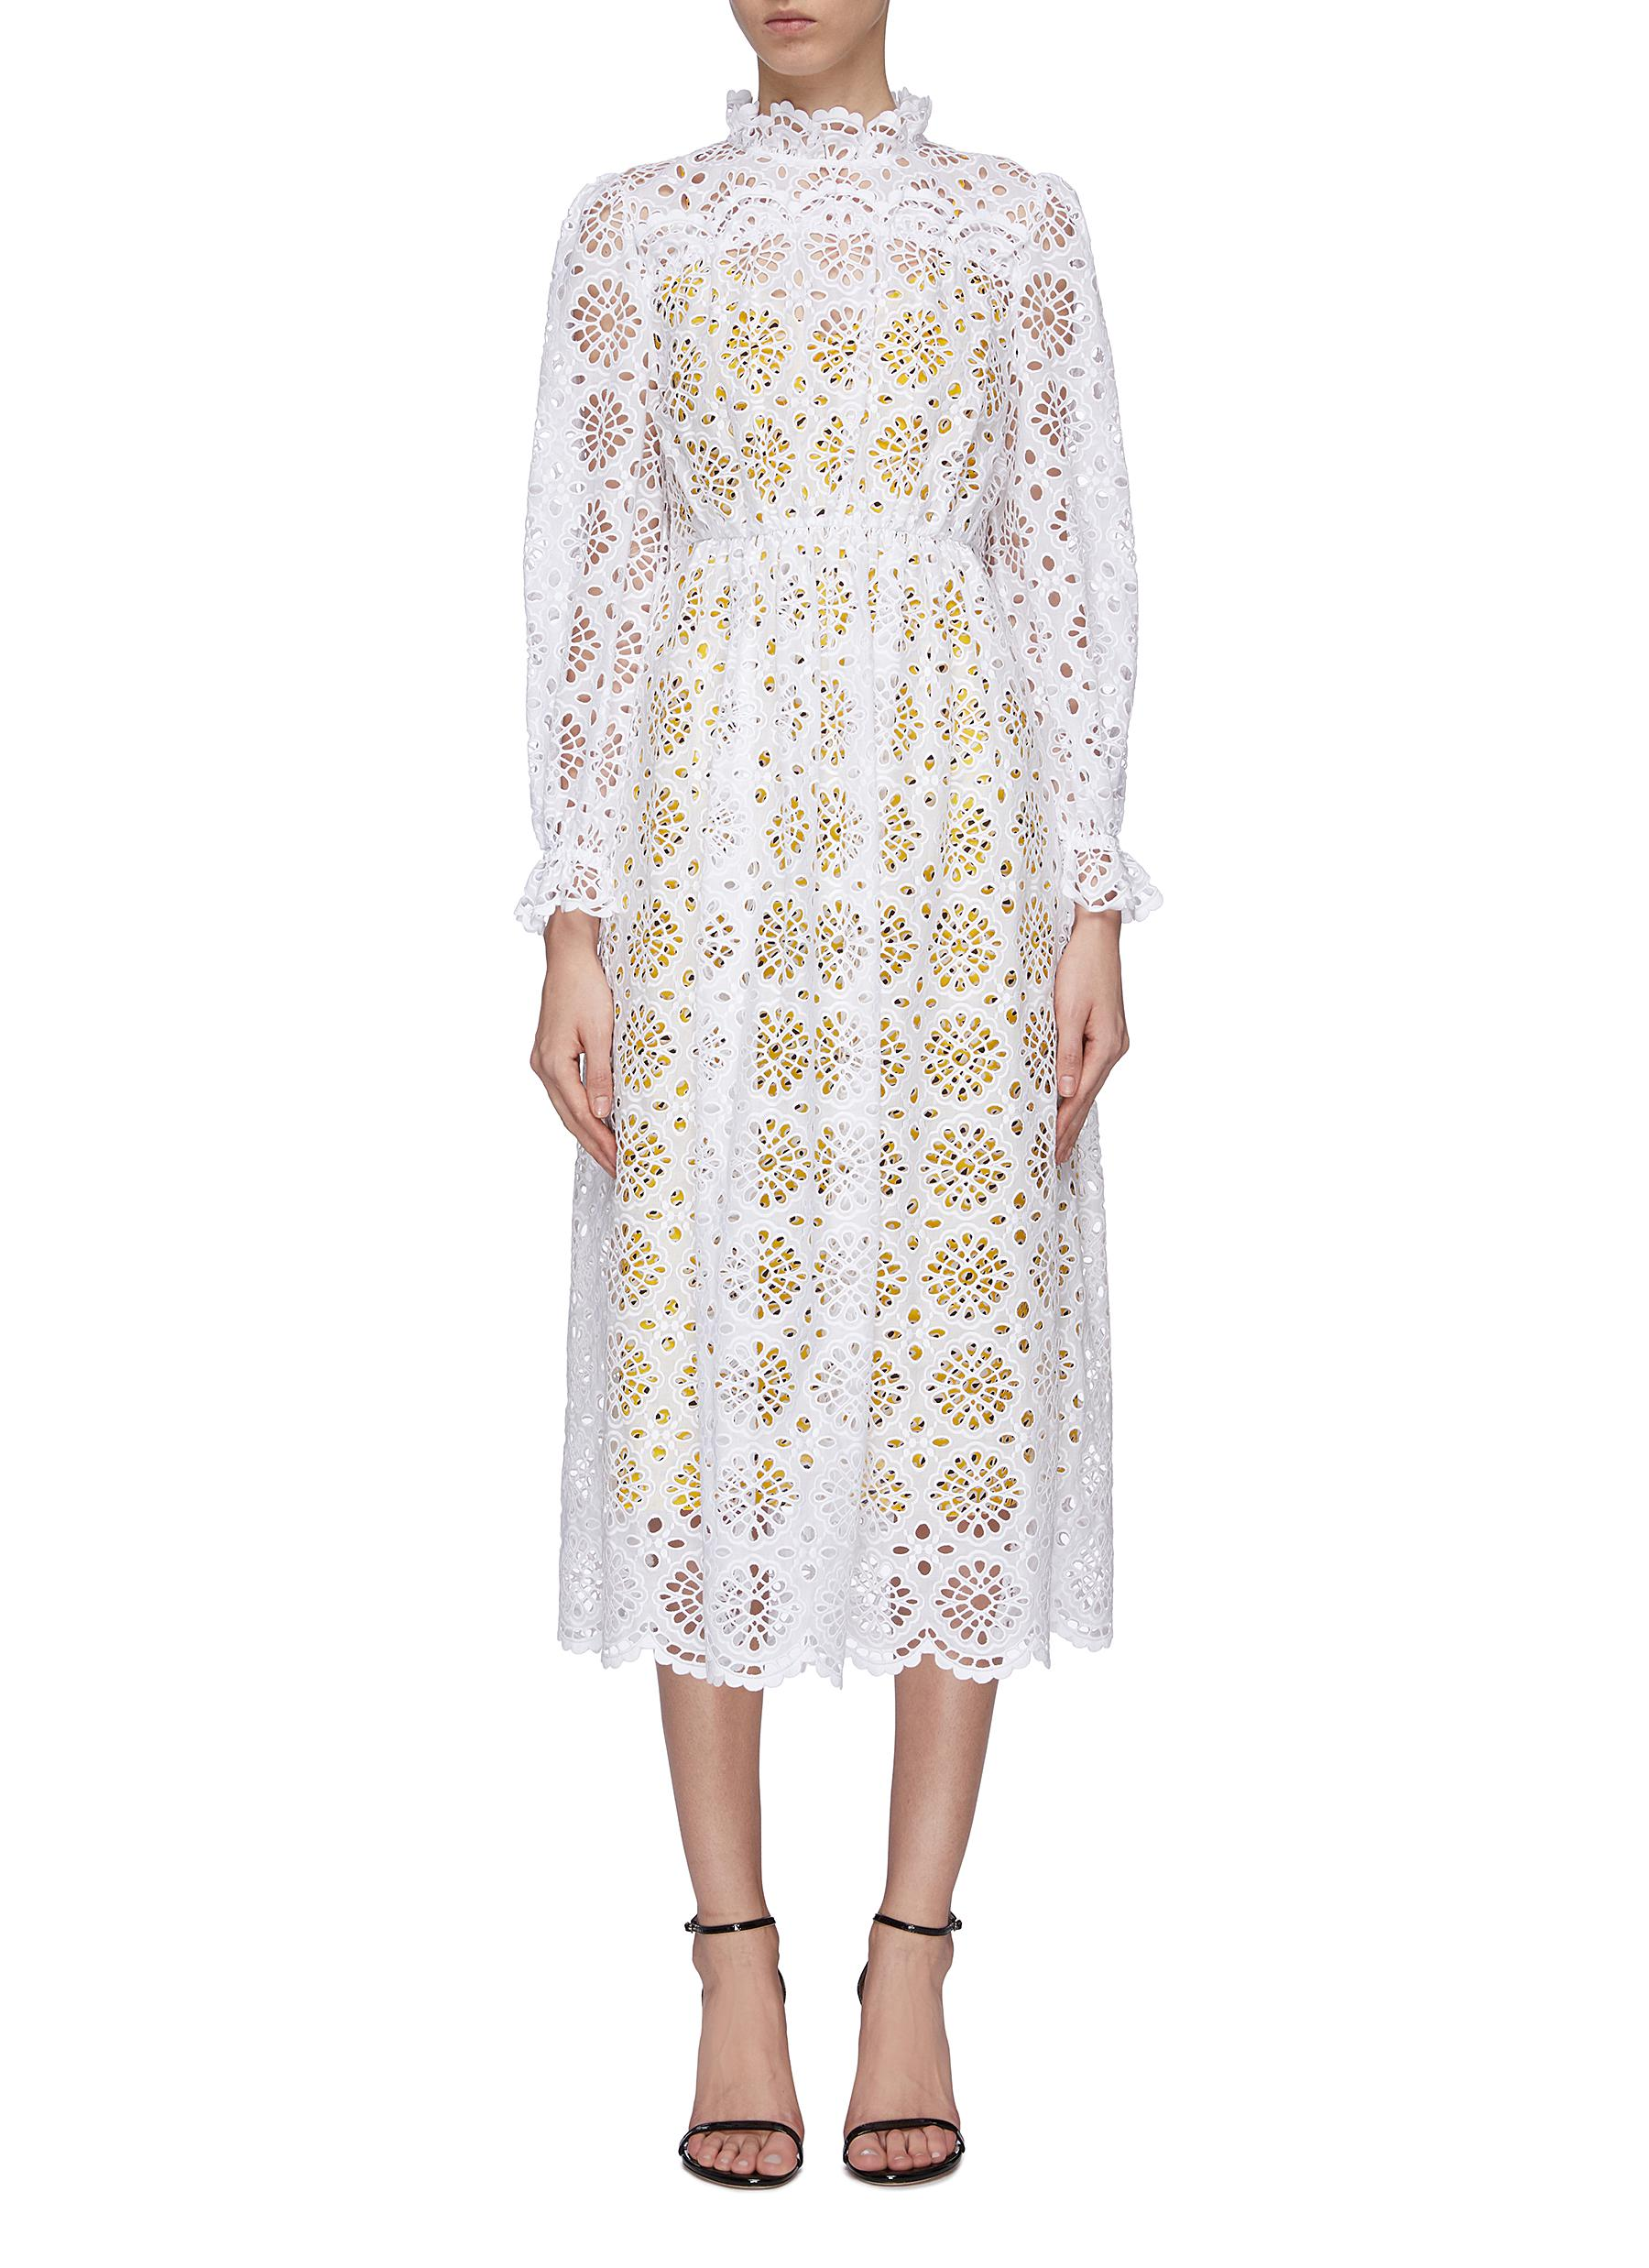 Leandra scalloped broderie anglaise dress by Diane Von Furstenberg